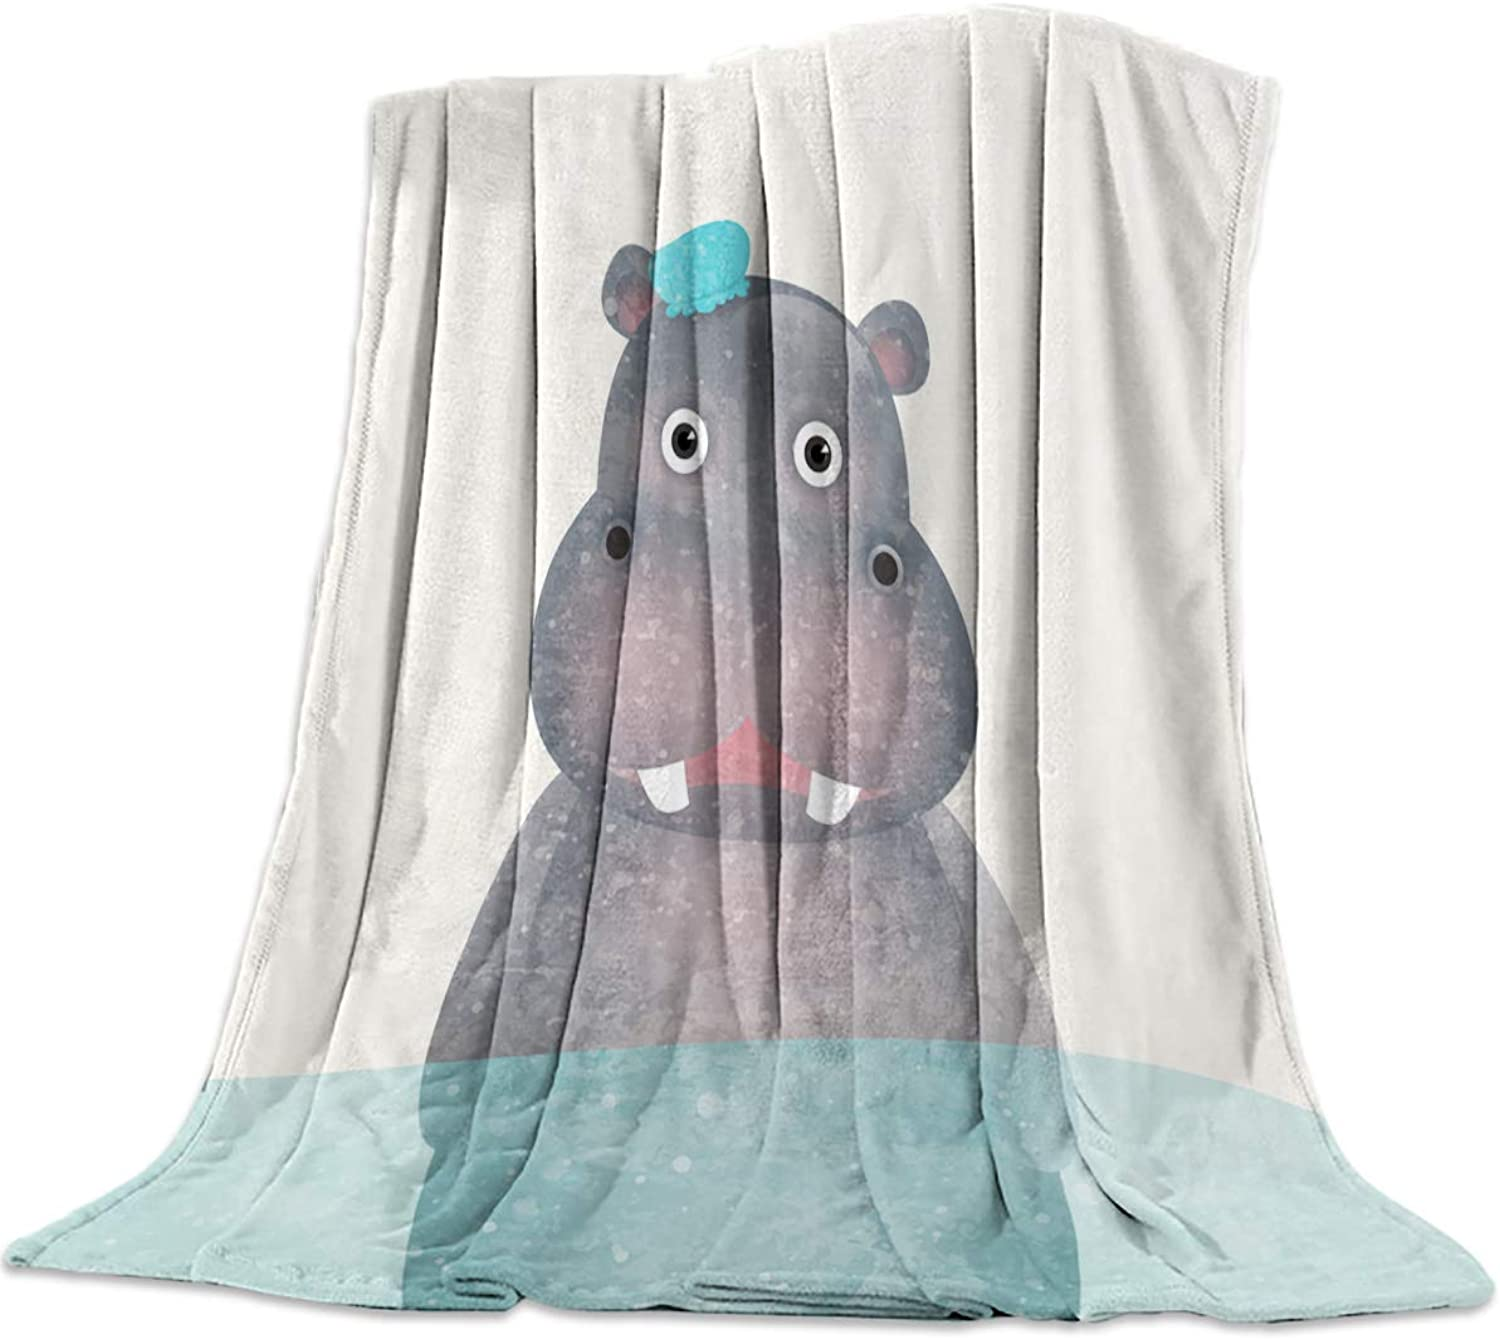 COLORSUM Animal Theme Soft Plush Throw Blanket 50x60 inch Printed Flannel Fleece Blanket for Bedroom Living Room Couch Bed Sofa - Hippo Taking Shower Cartoon Design